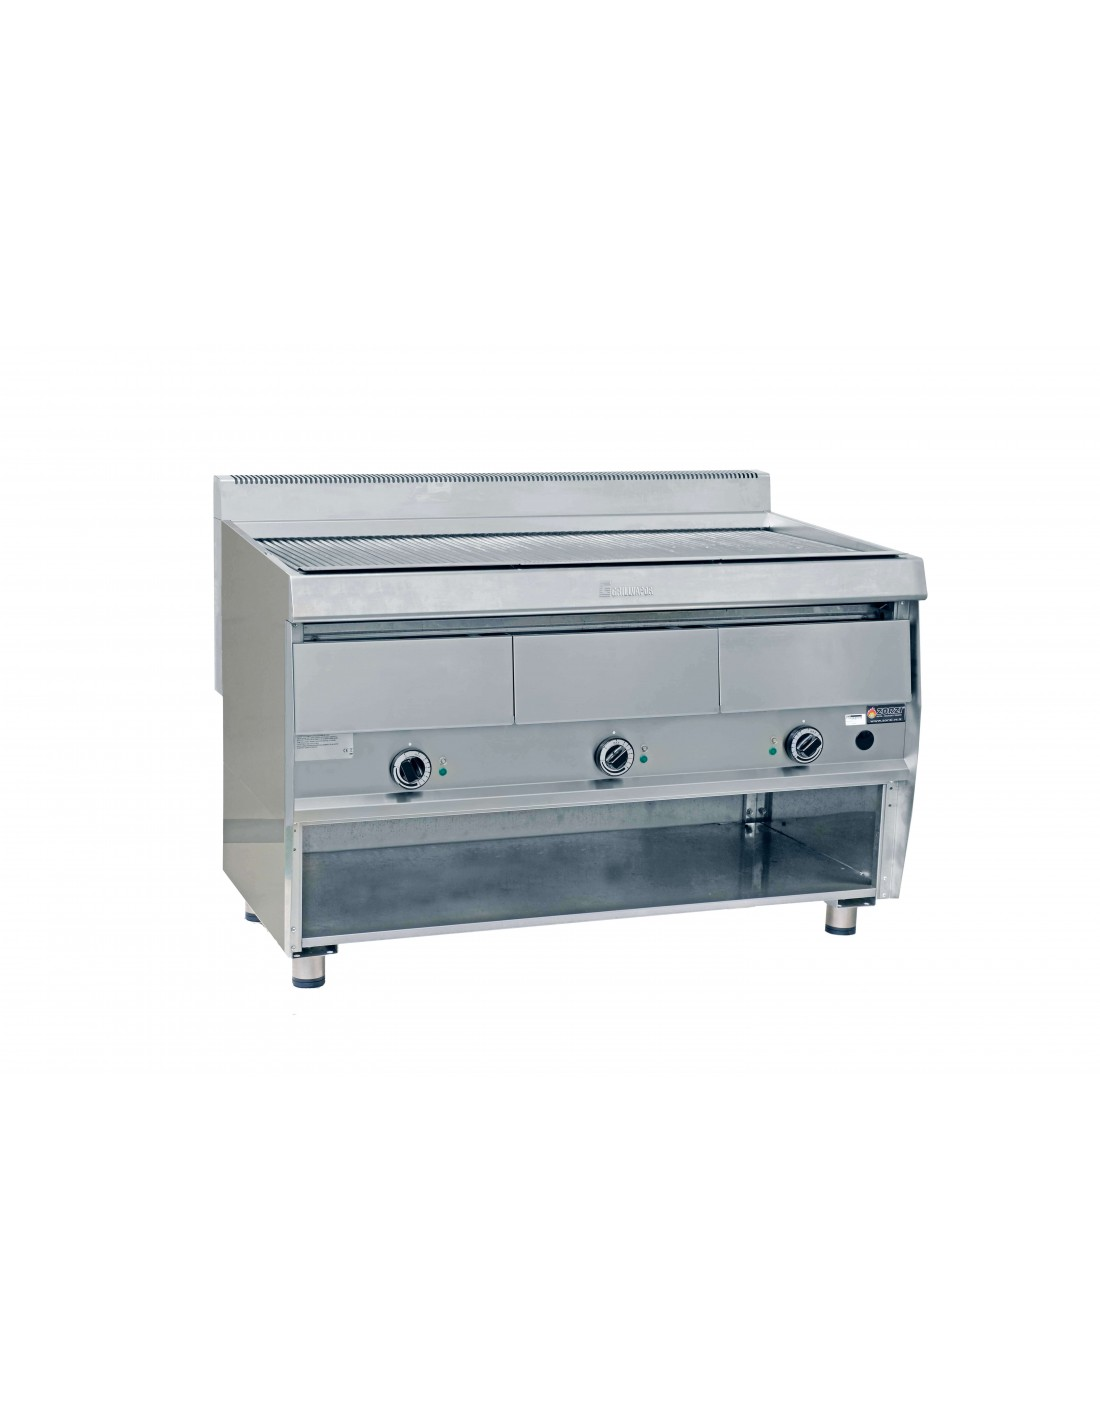 Armadio 120 Cm.Electric Grill 120 Cm Wide On Empty Base Cft12